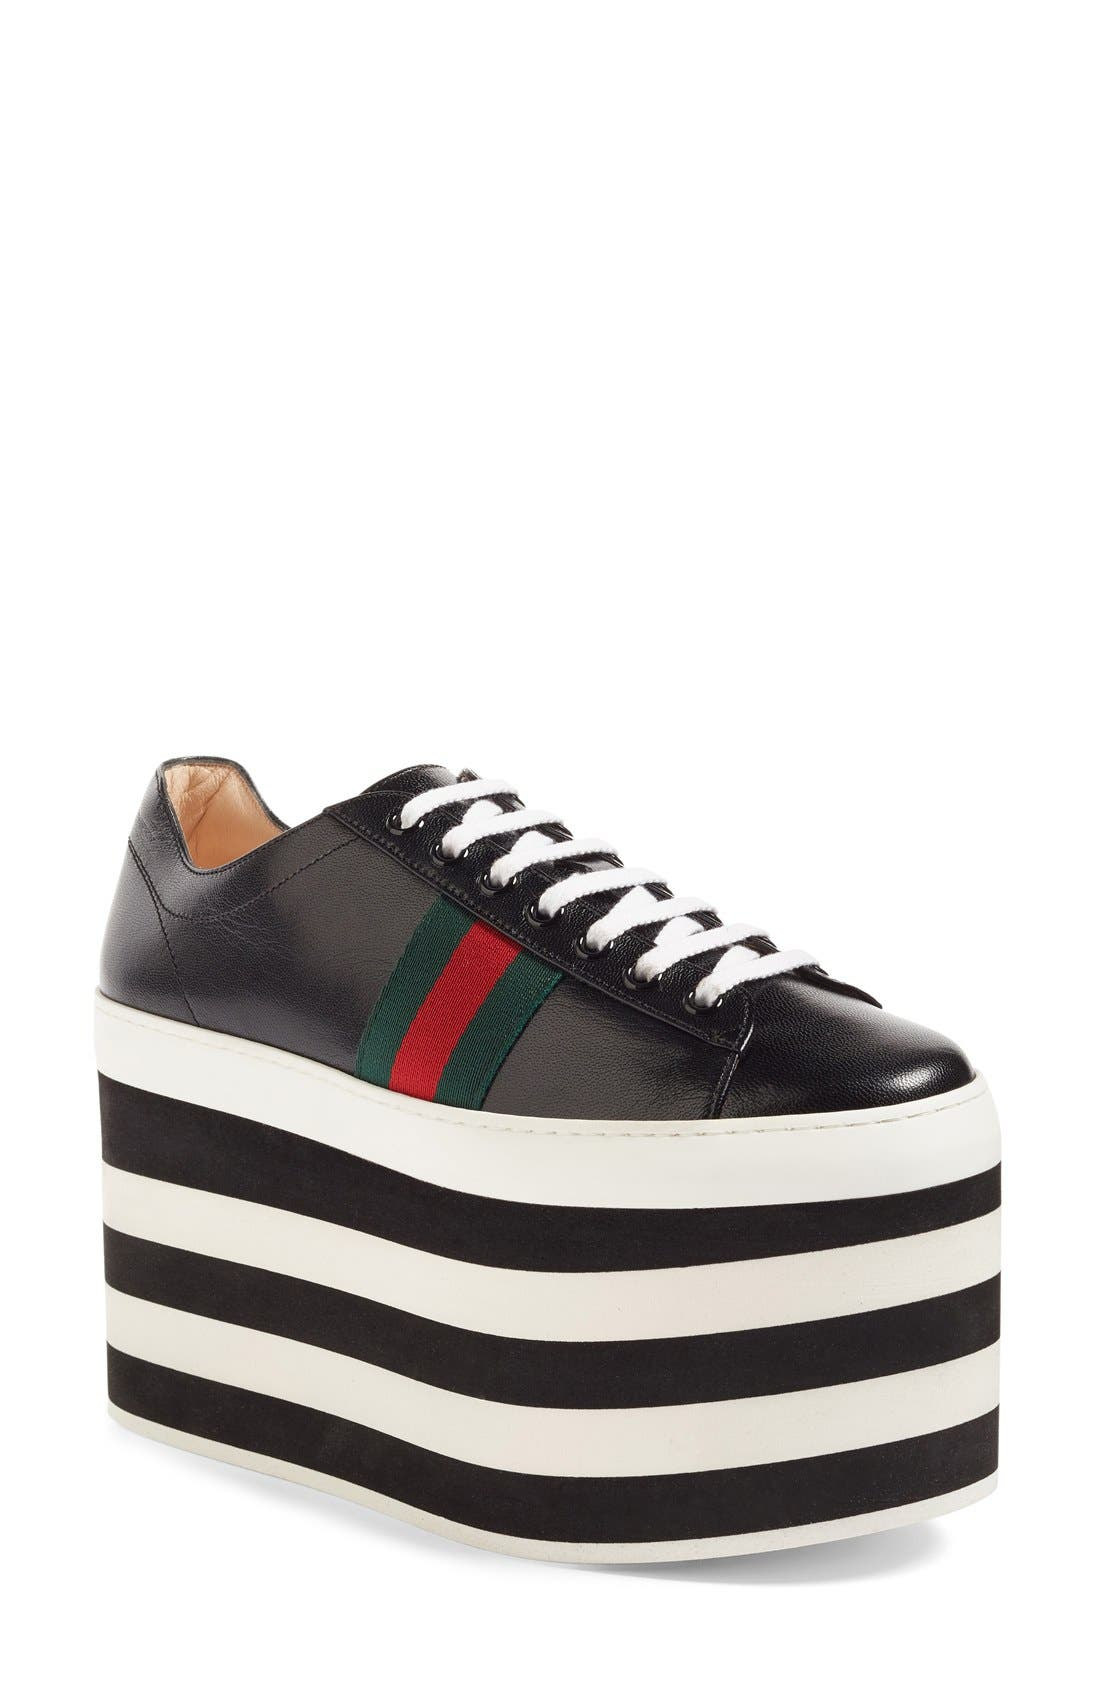 Alternate Image 1 Selected - Gucci Peggy Platform Sneaker (Women)